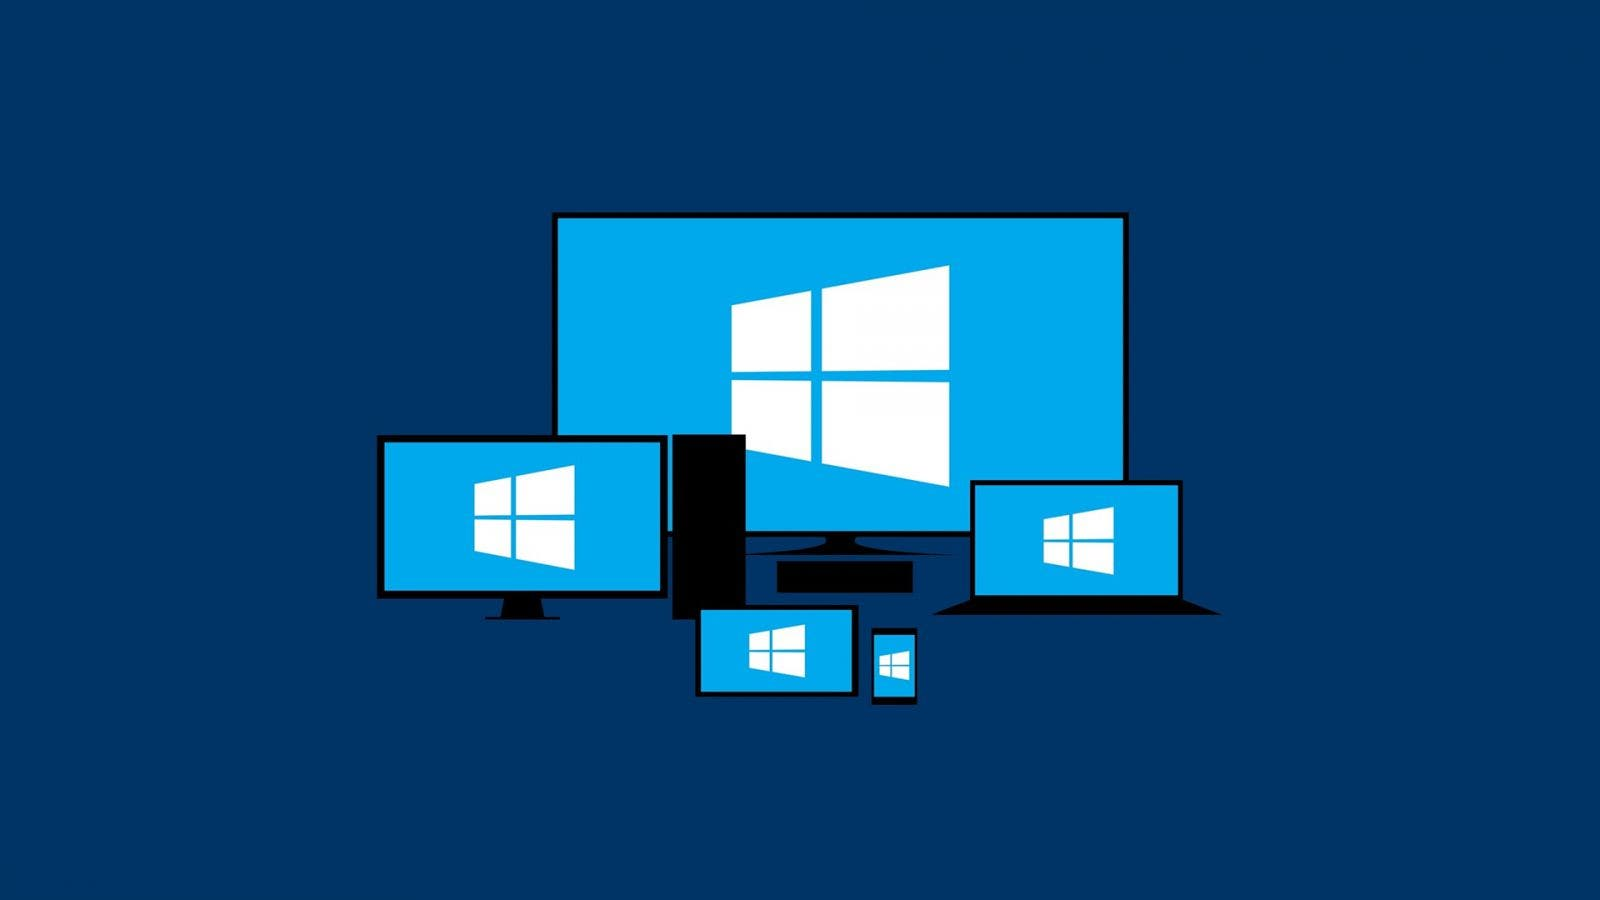 Windows-10-wallpaper-New-Logo2